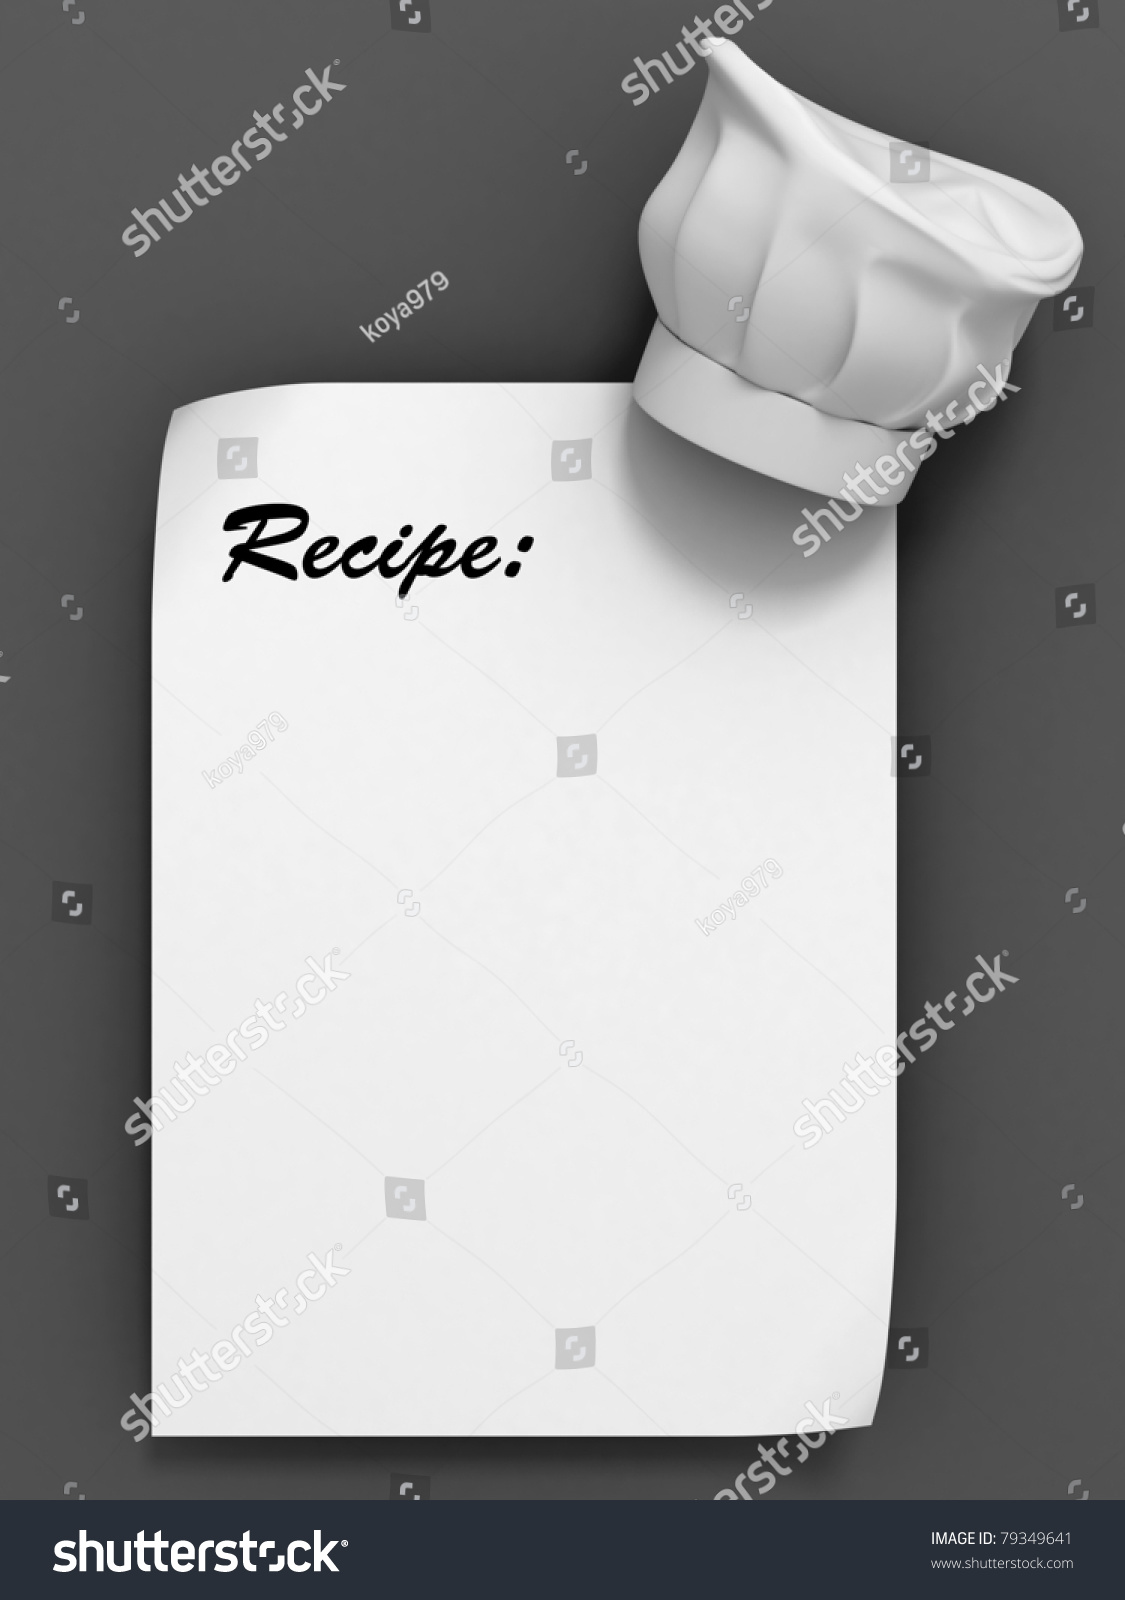 chef hat template printable - recipe template chef hat on blank stock illustration